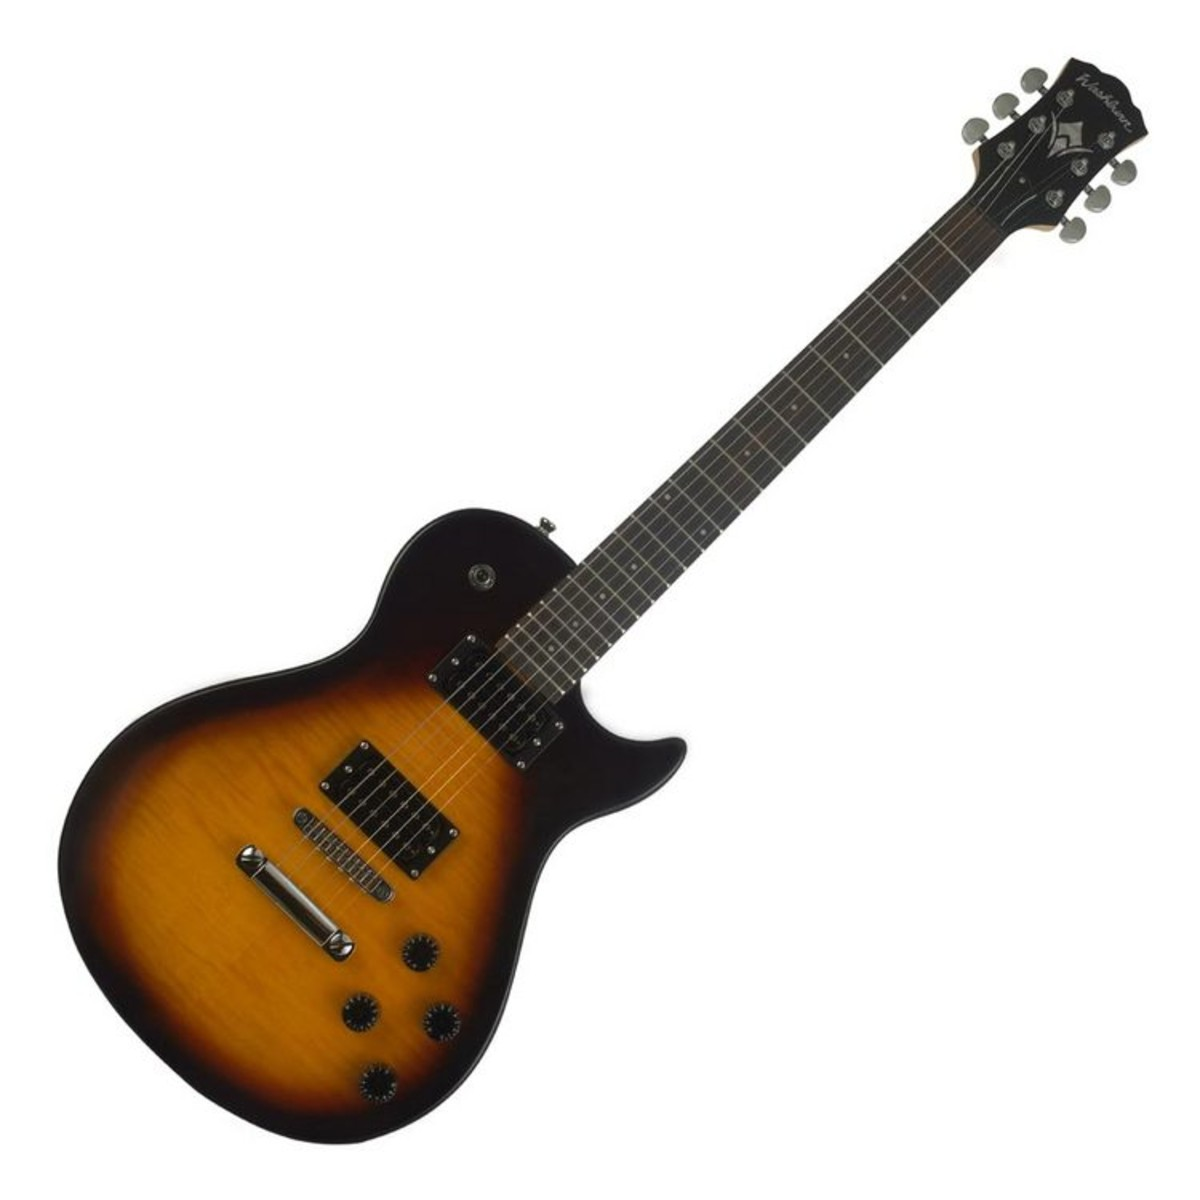 washburn win14 f electric guitar sunburst at. Black Bedroom Furniture Sets. Home Design Ideas